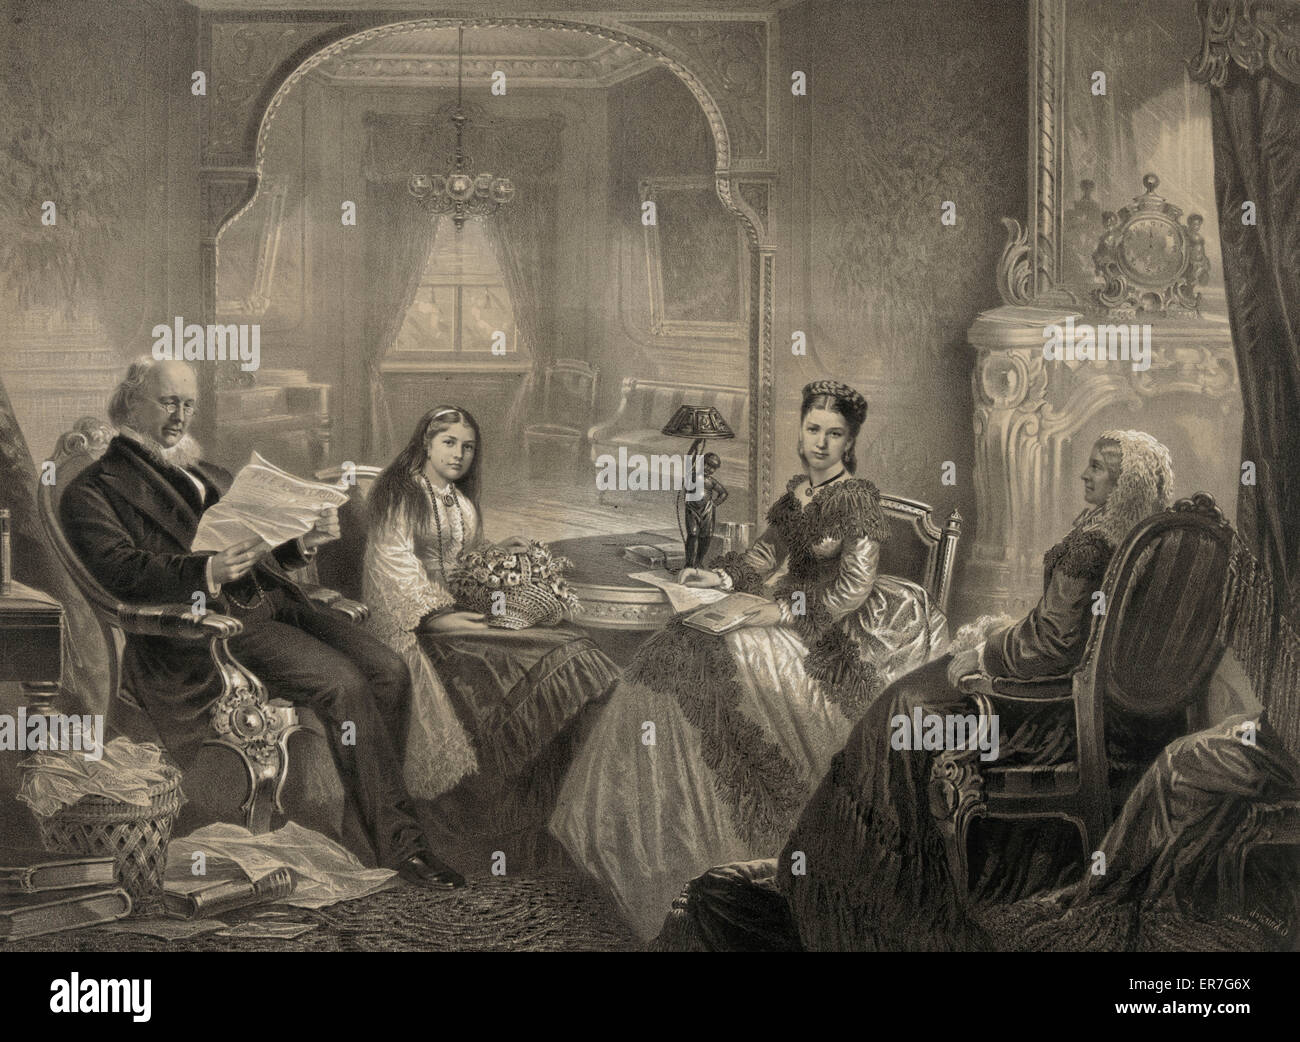 Horace Greeley and family. - Stock Image